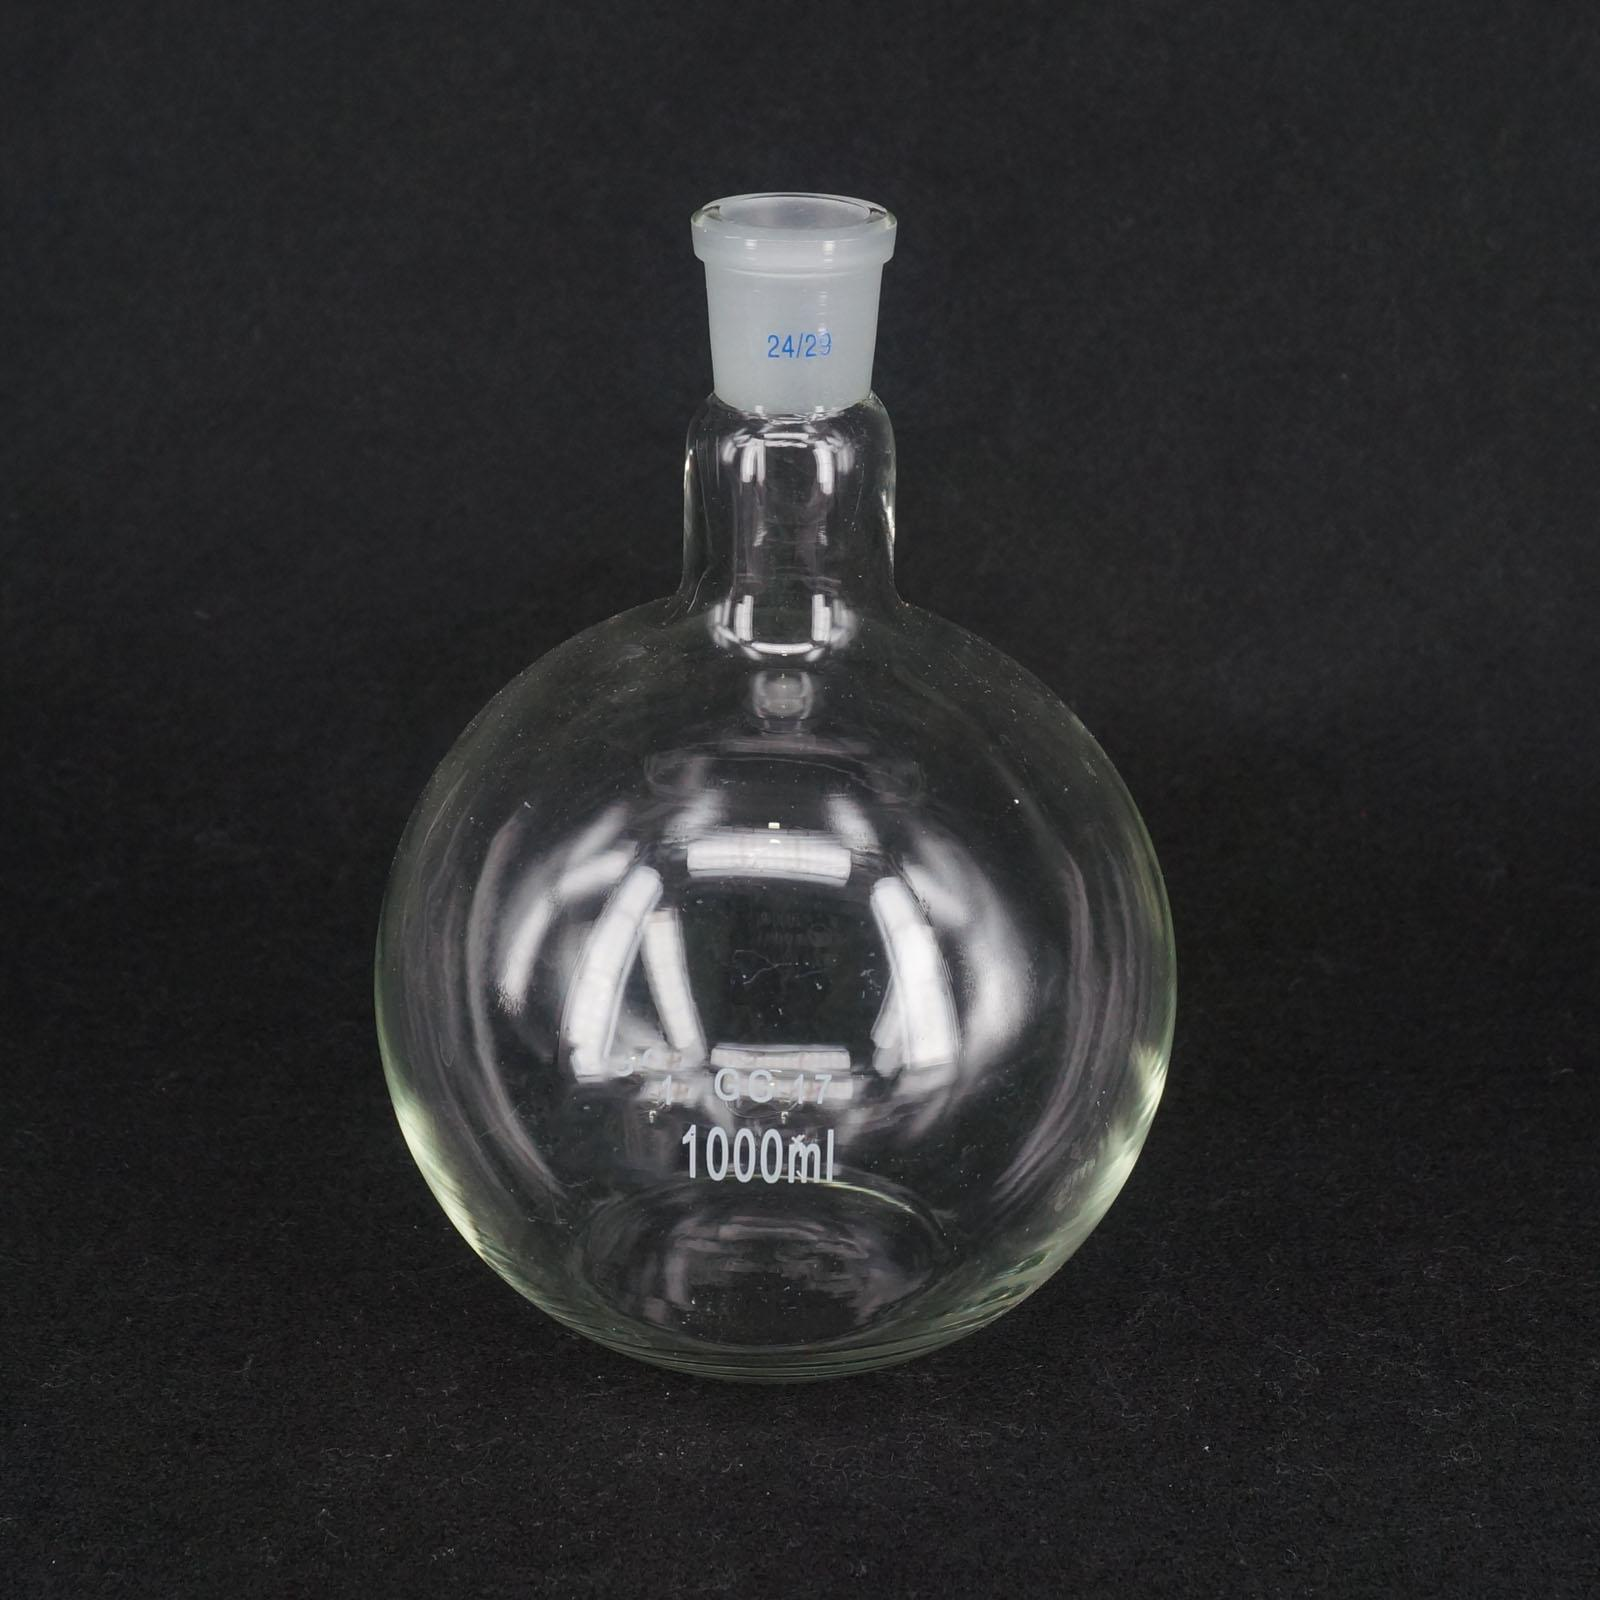 1000ML 24/29 One Mouth Short Neck Flat Bottom Flask Boiling Flask For Laboratory